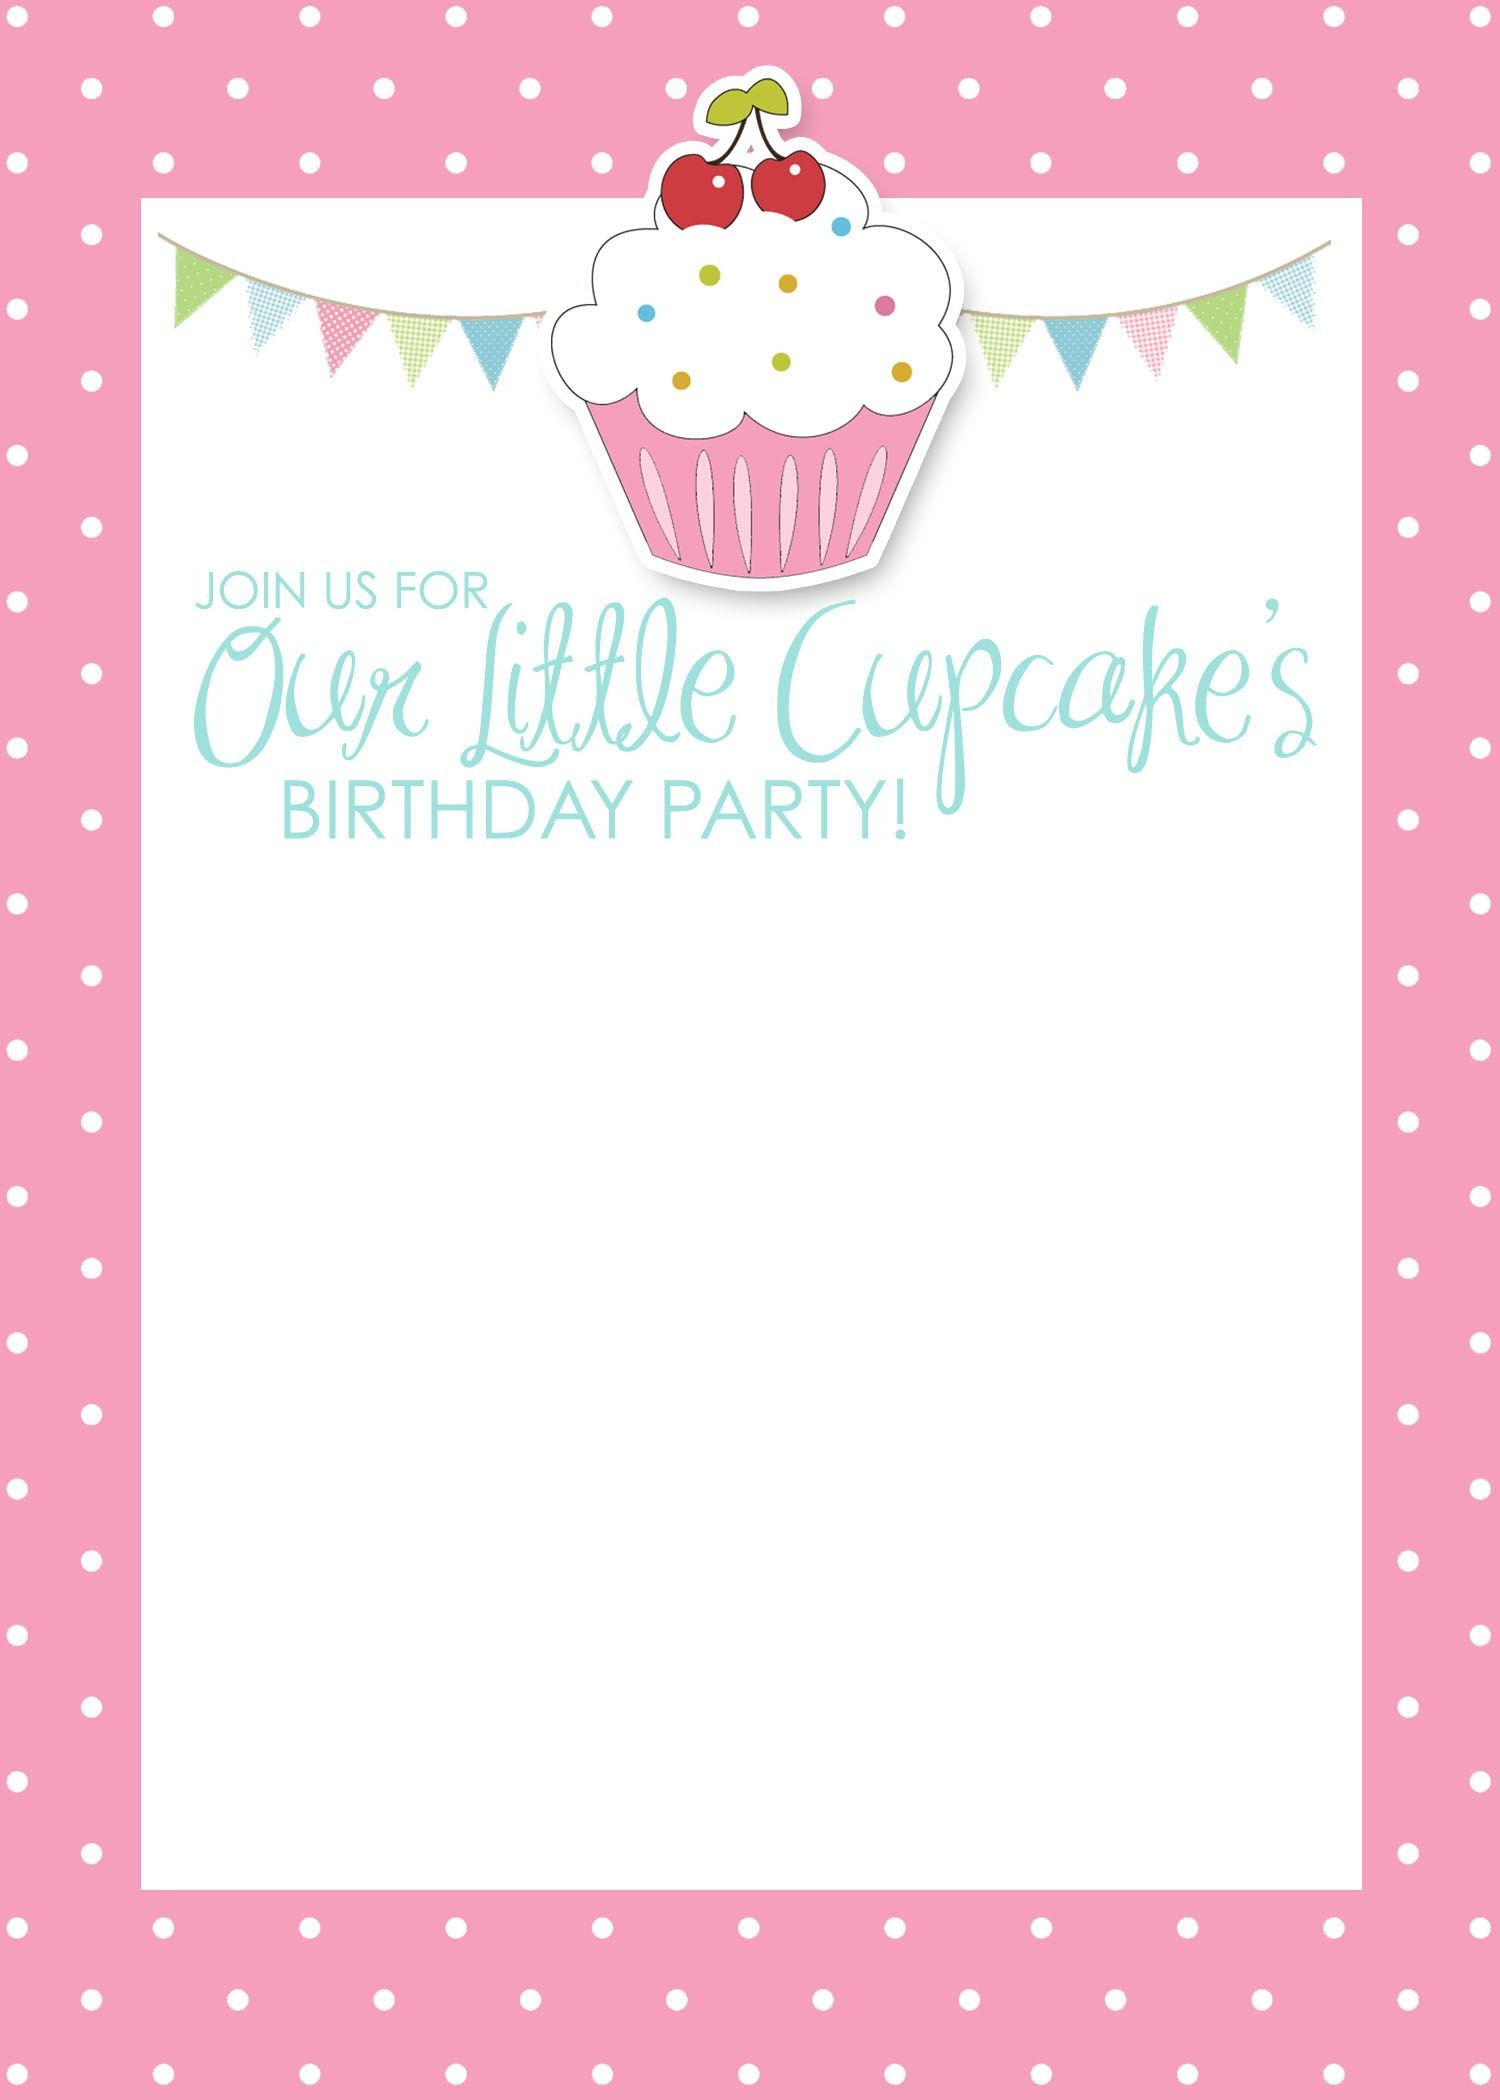 Cupcake Birthday Party With Free Printables | Detalles Fiestas - Free Printable Birthday Invitations Pinterest